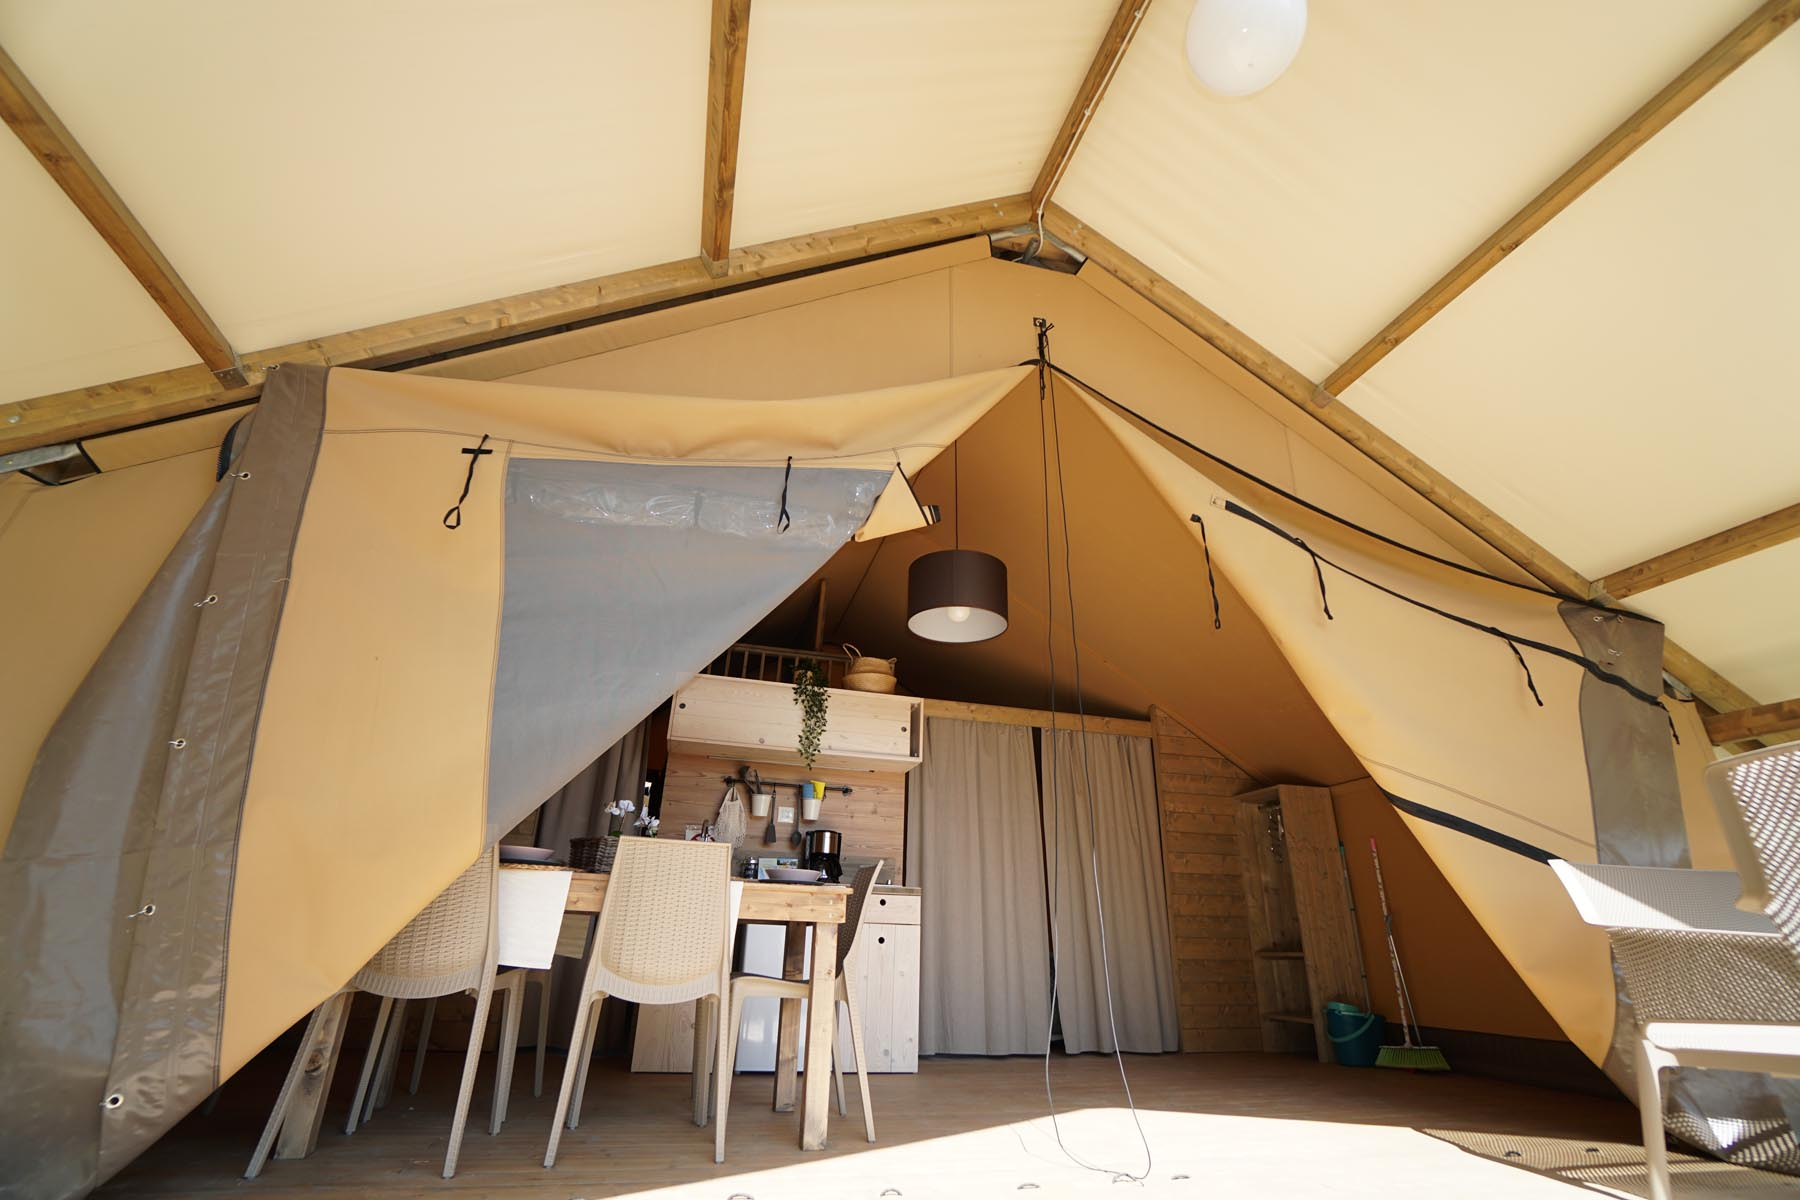 Glamping Tuscany - Lodge Safari